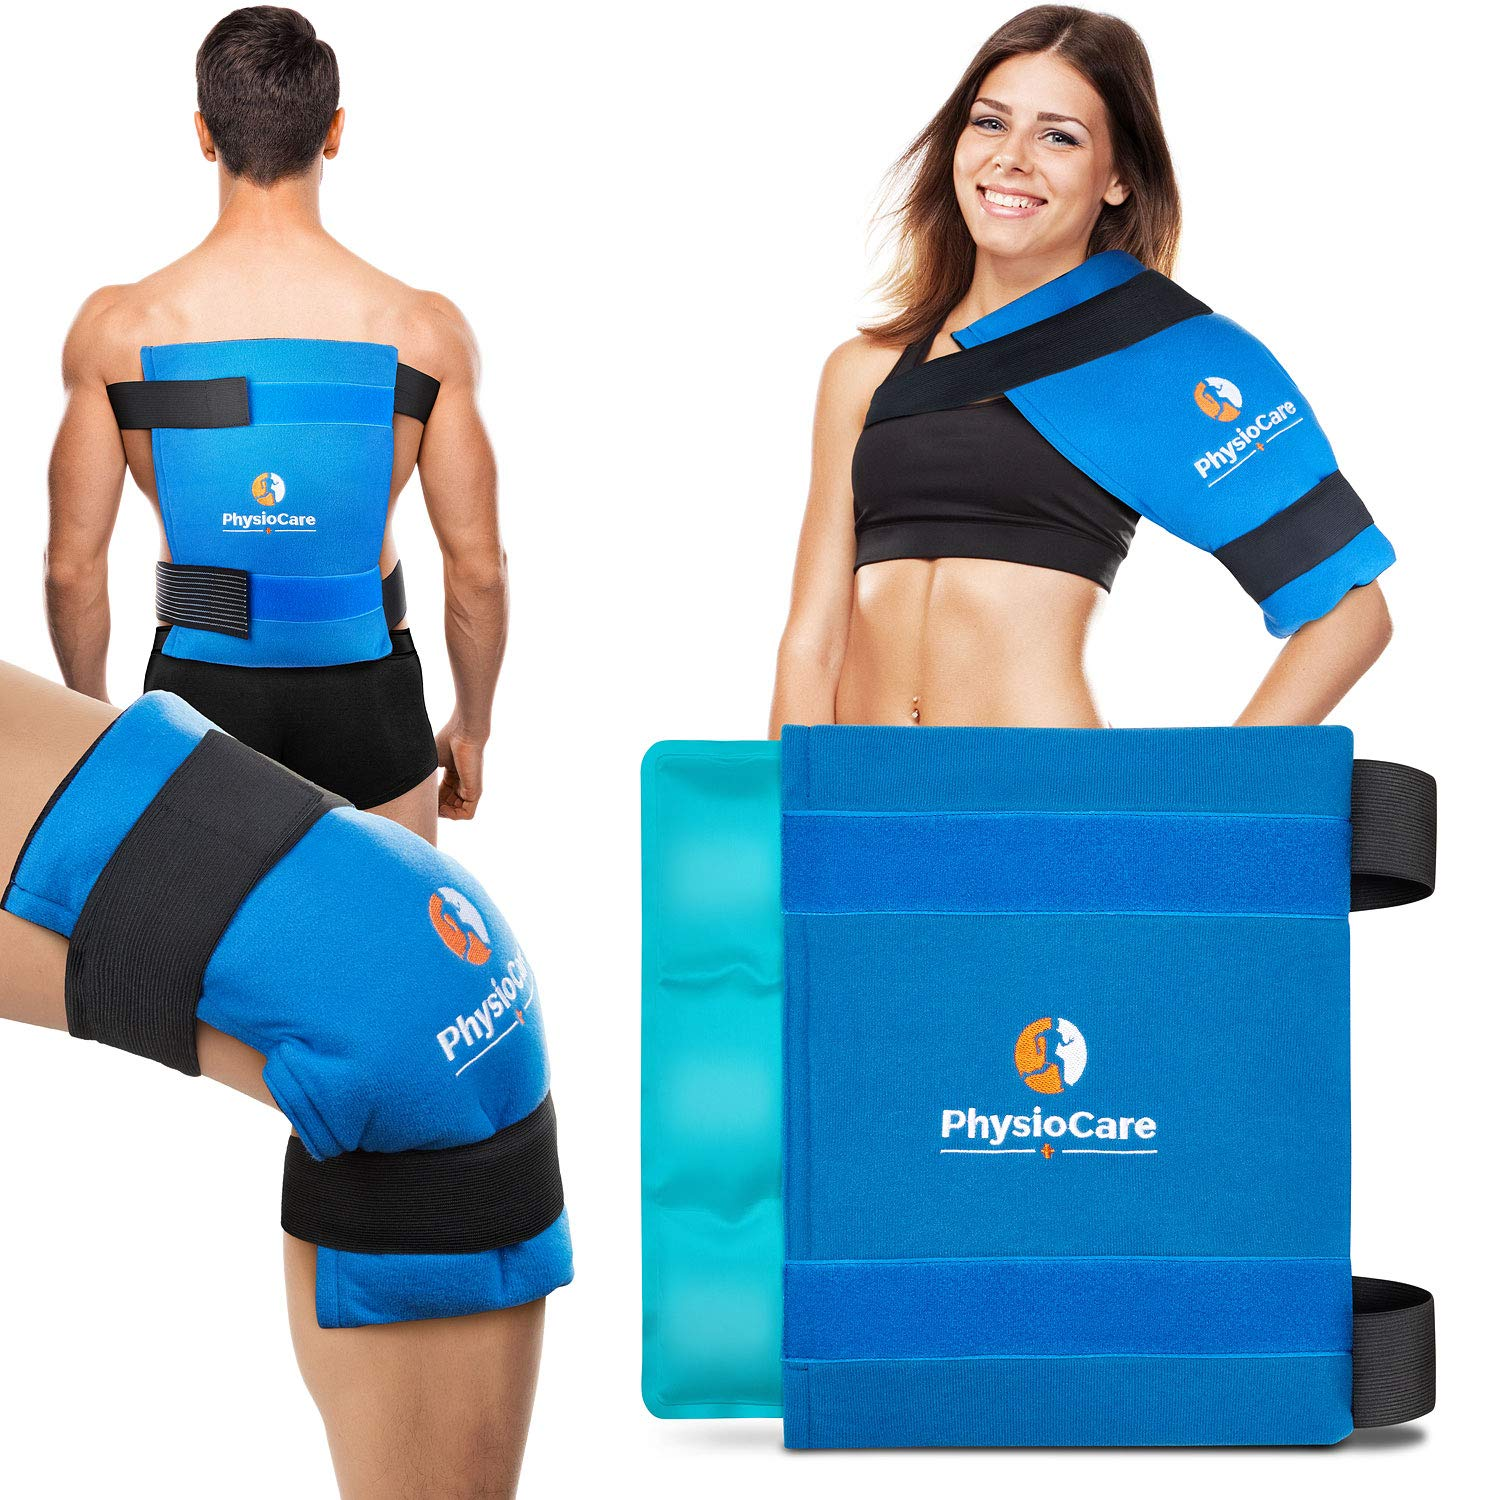 PhysioCare Large Flexible Gel Ice Pack & Wrap - Hot & Cold Therapy for Hip, Shoulder, Elbow, Back, Knee - Instant Pain Relief for Injuries, Recovery, Swelling, Aches, Bruises & Sprains - XL 11'' x 14''